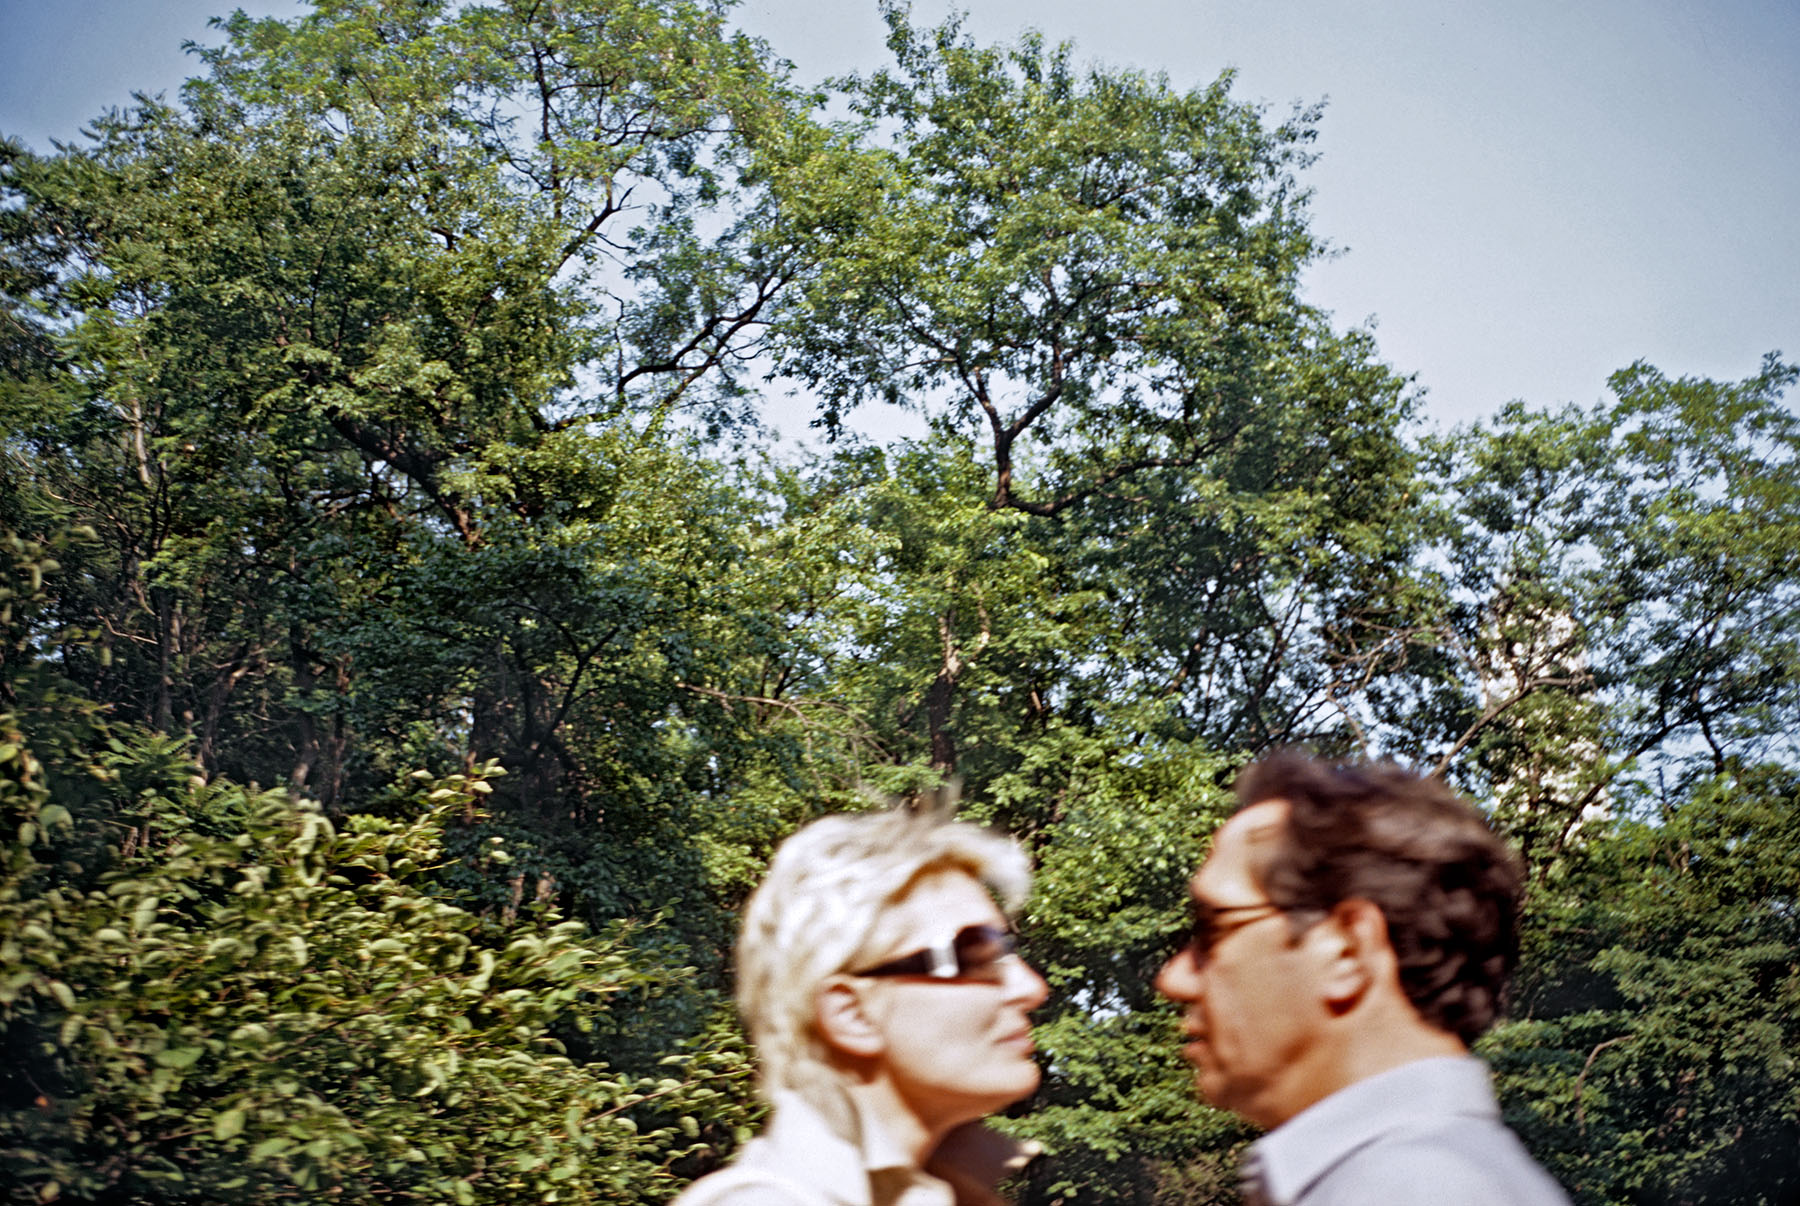 central park blurry couple_55mgs